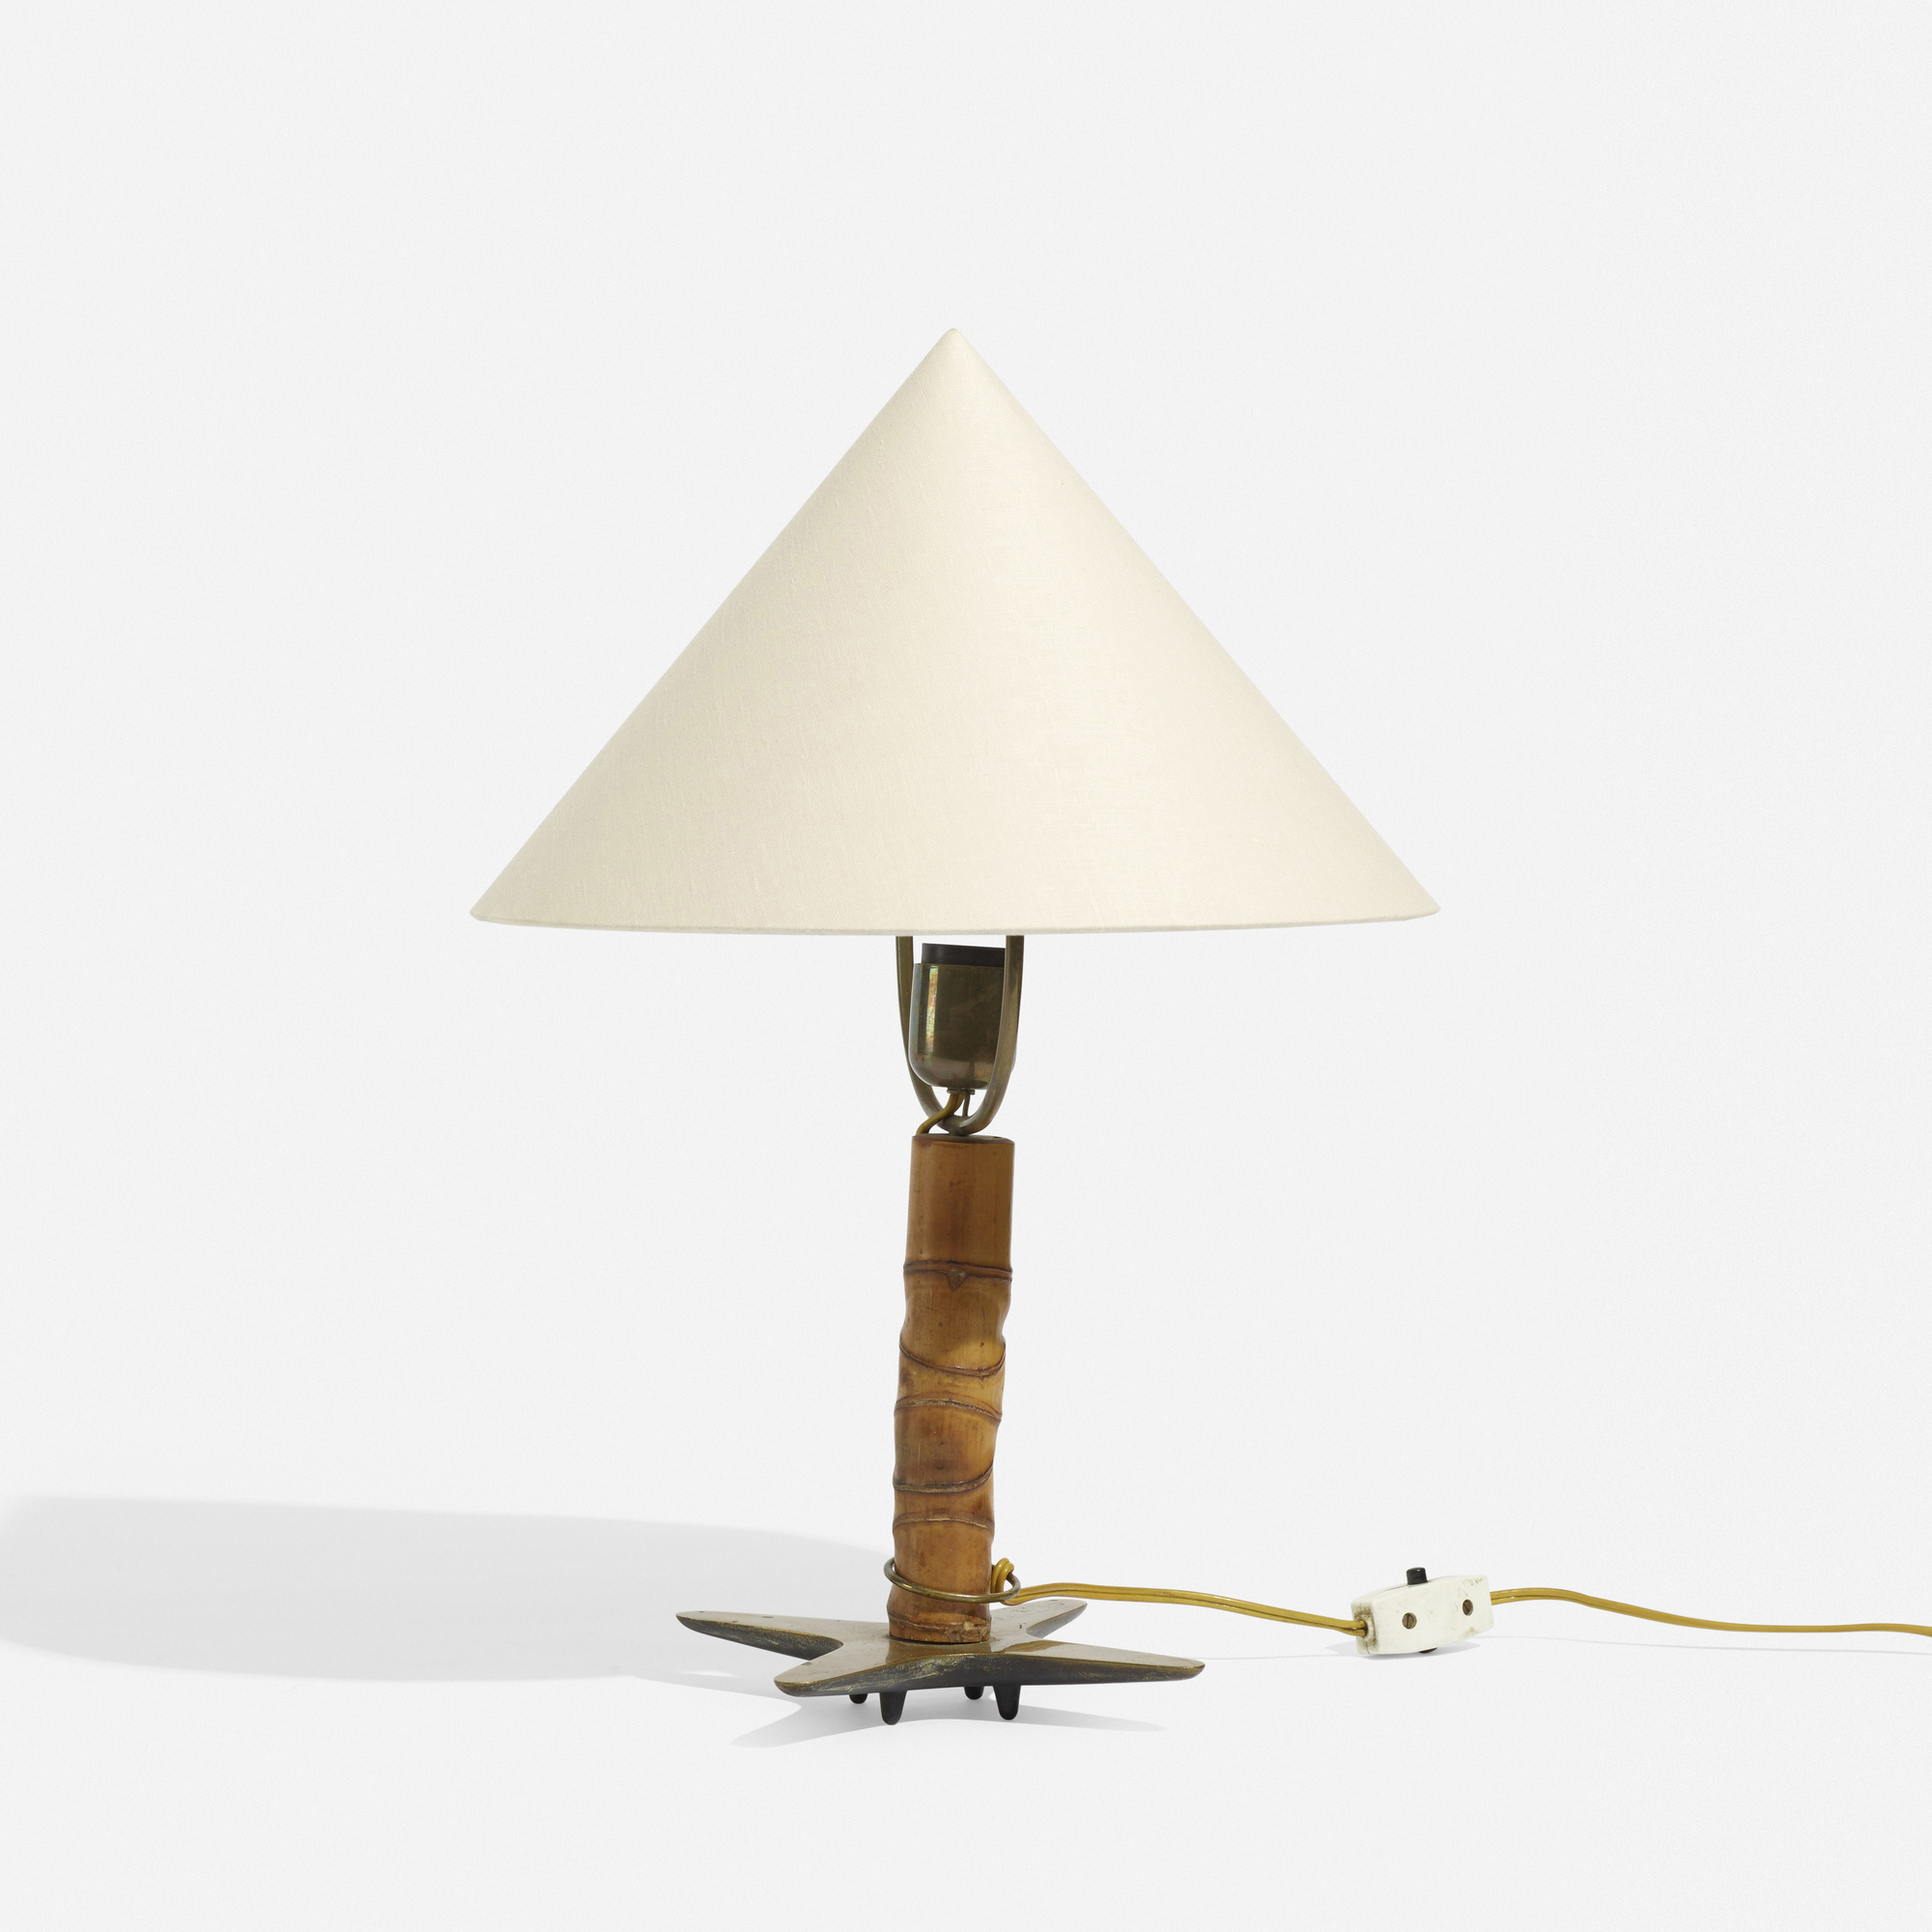 138: Carl Auböck II / table lamp (2 of 4)